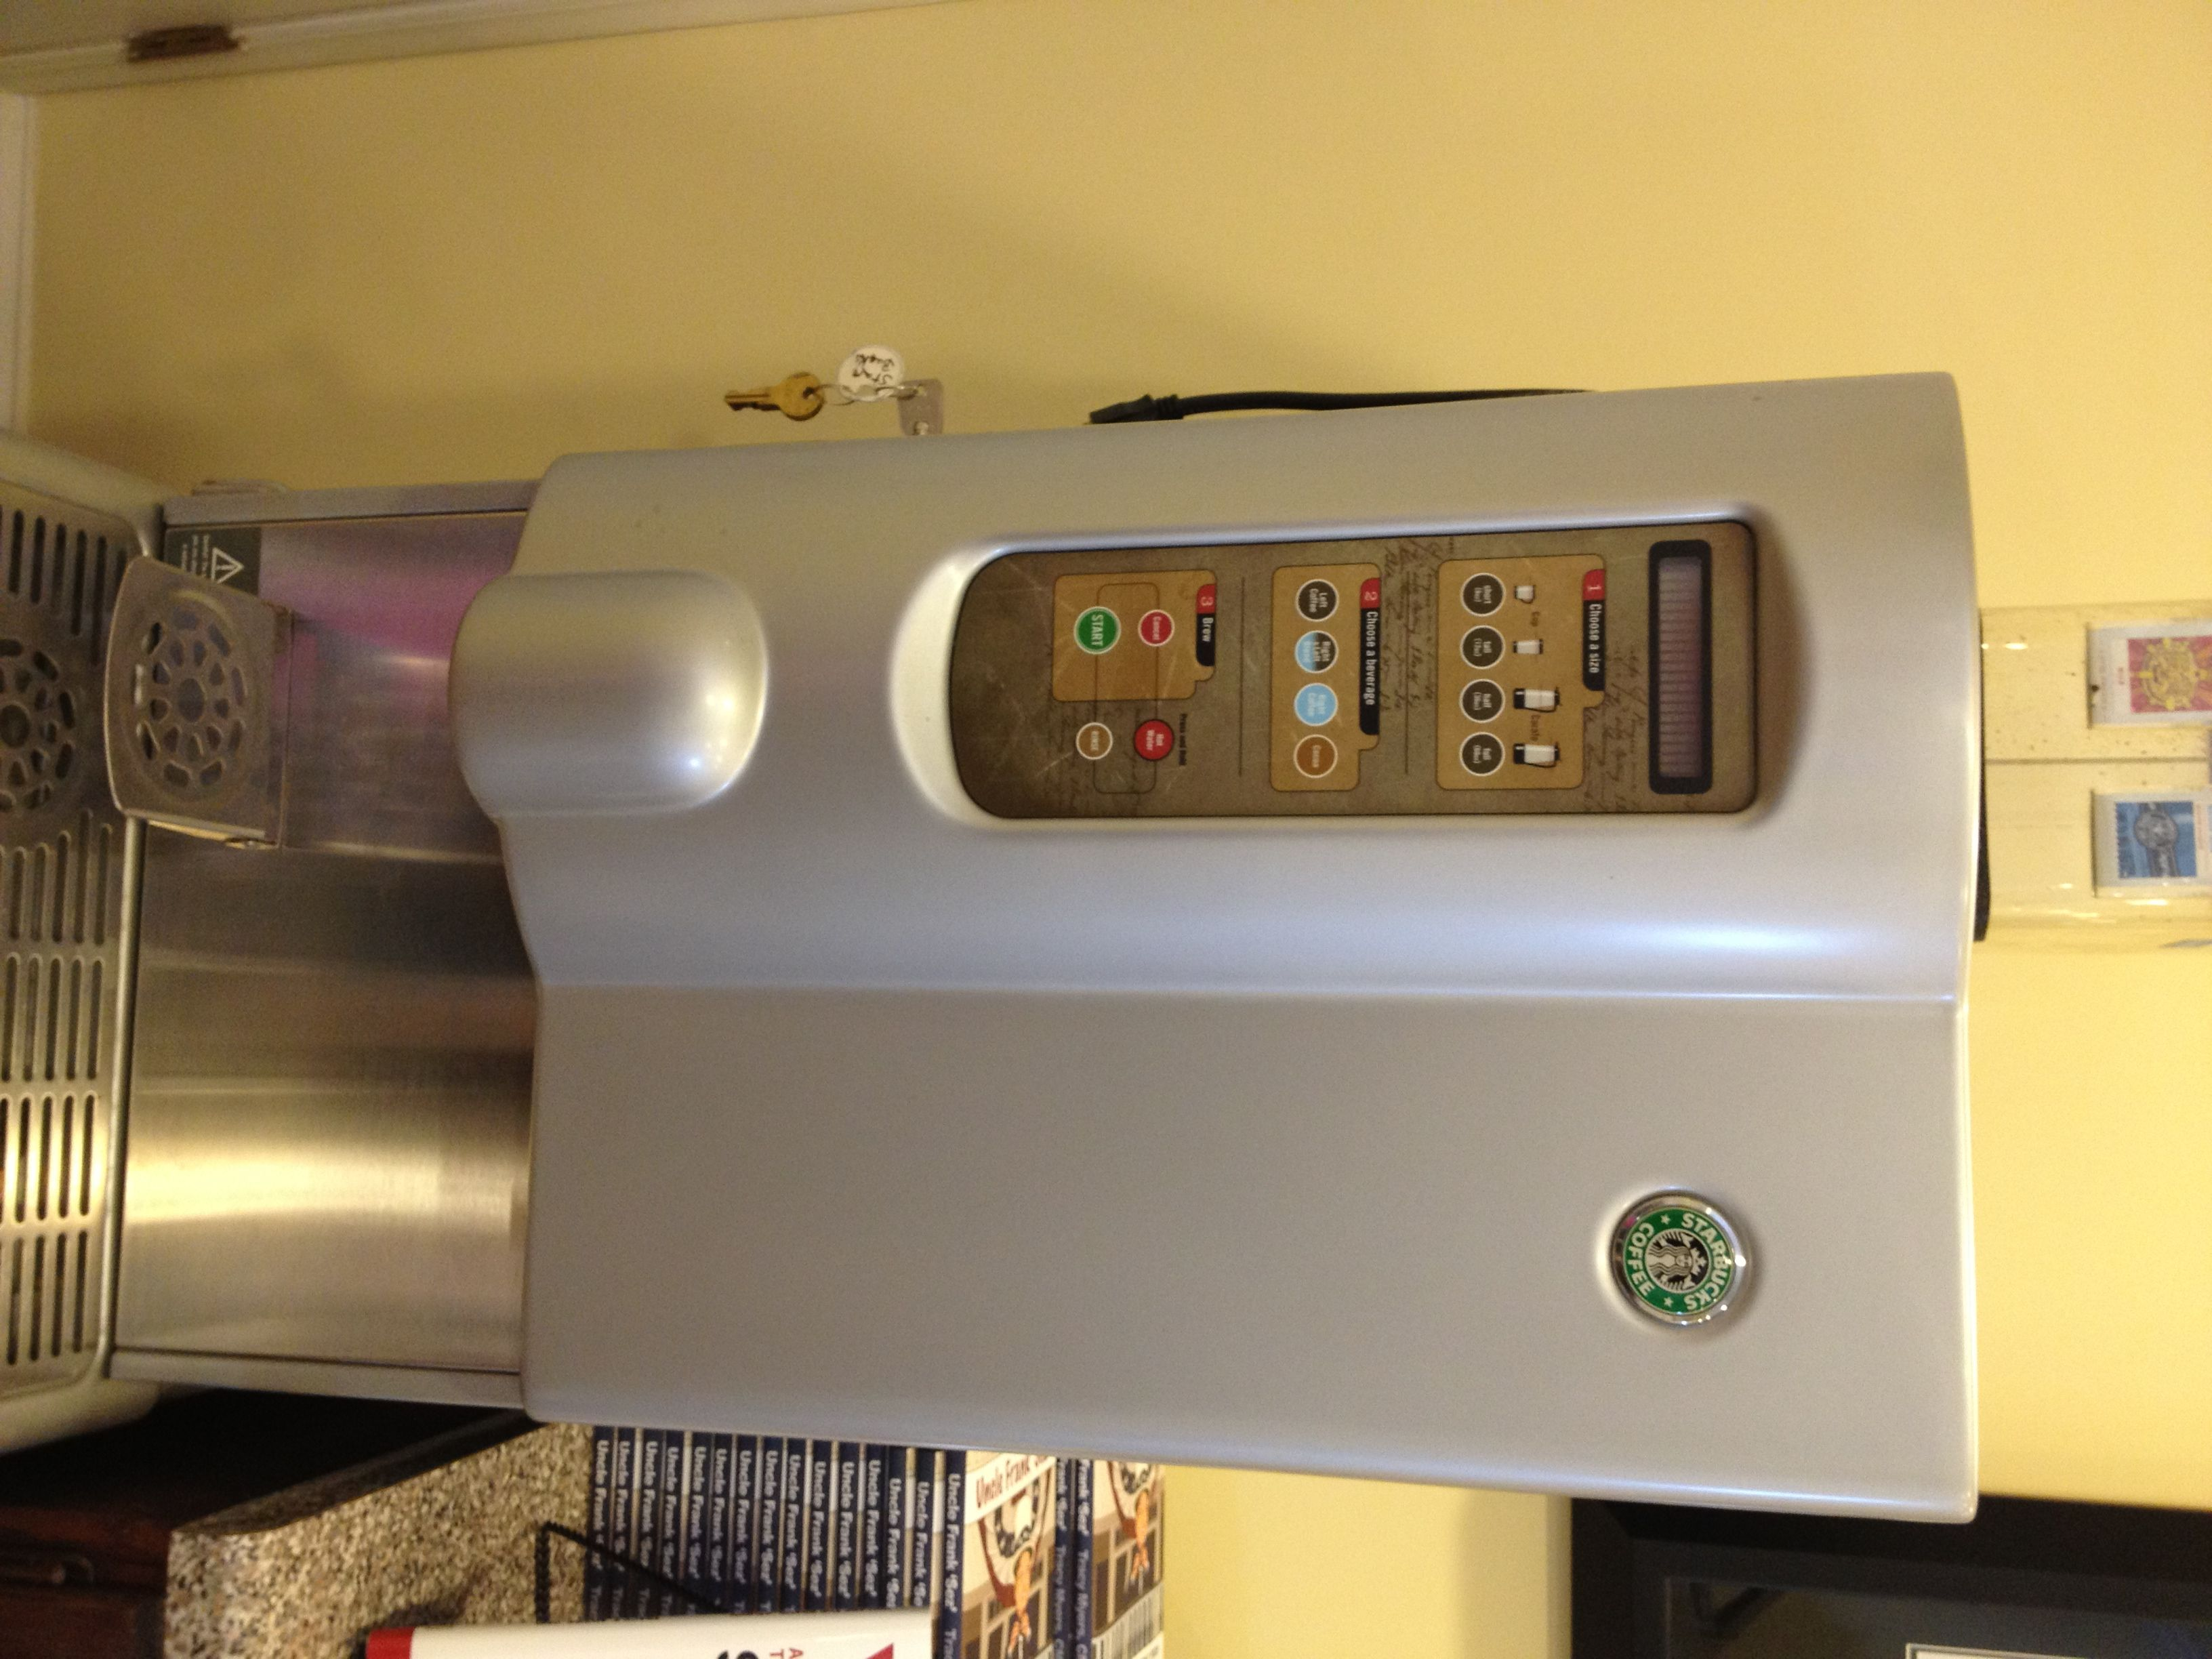 Cafection SB10301 Starbucks Interactive Cup Coffee Brewer Dispenser Machine  Craigslist Posting Set Up 12.14.2012